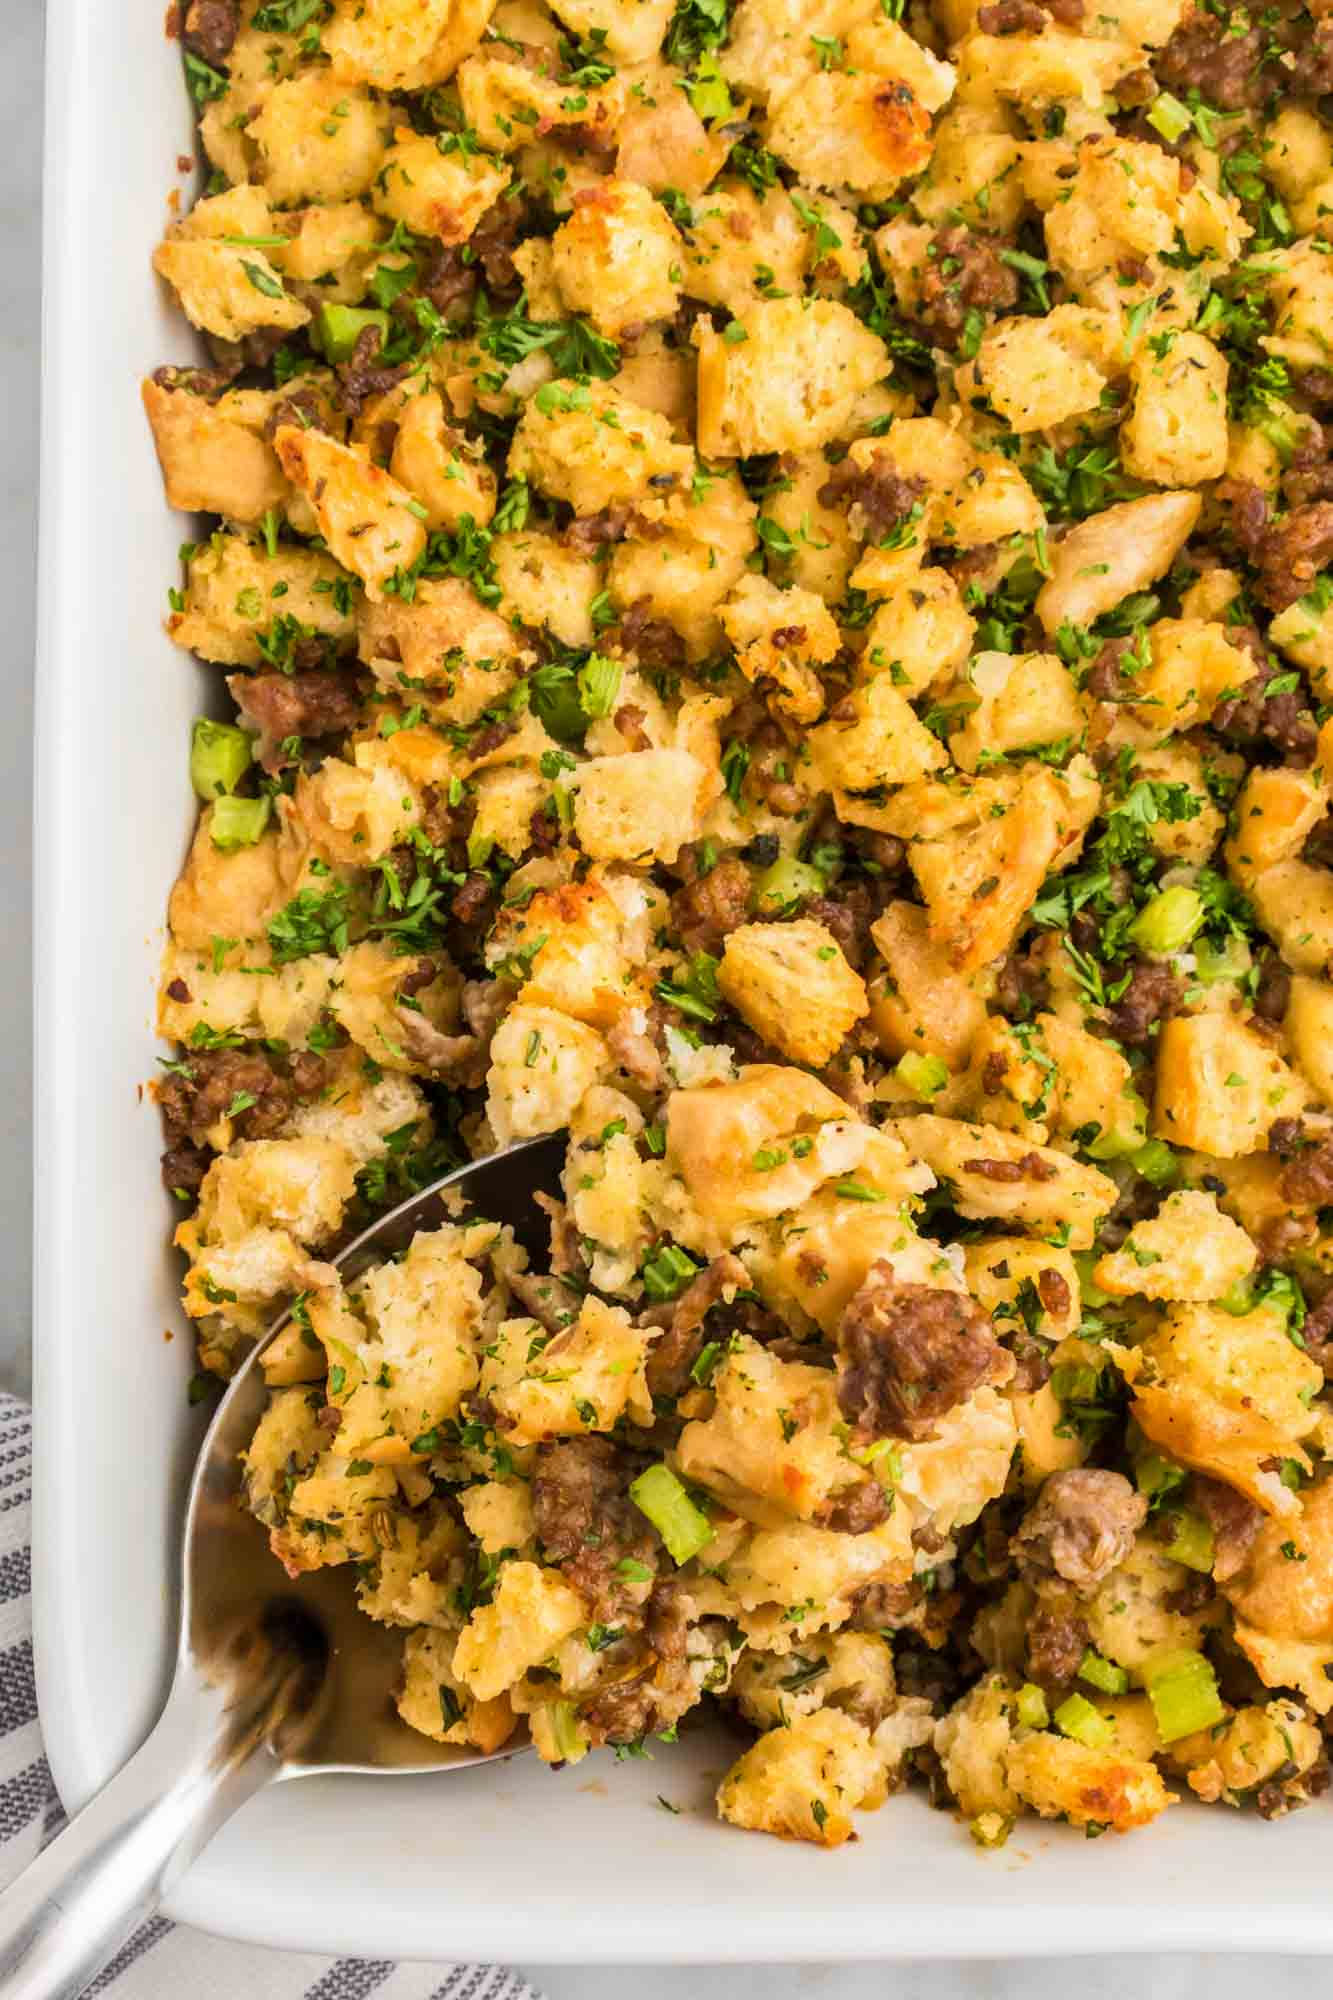 Overhead shot of sausage stuffing in a baking dish with a serving spoon